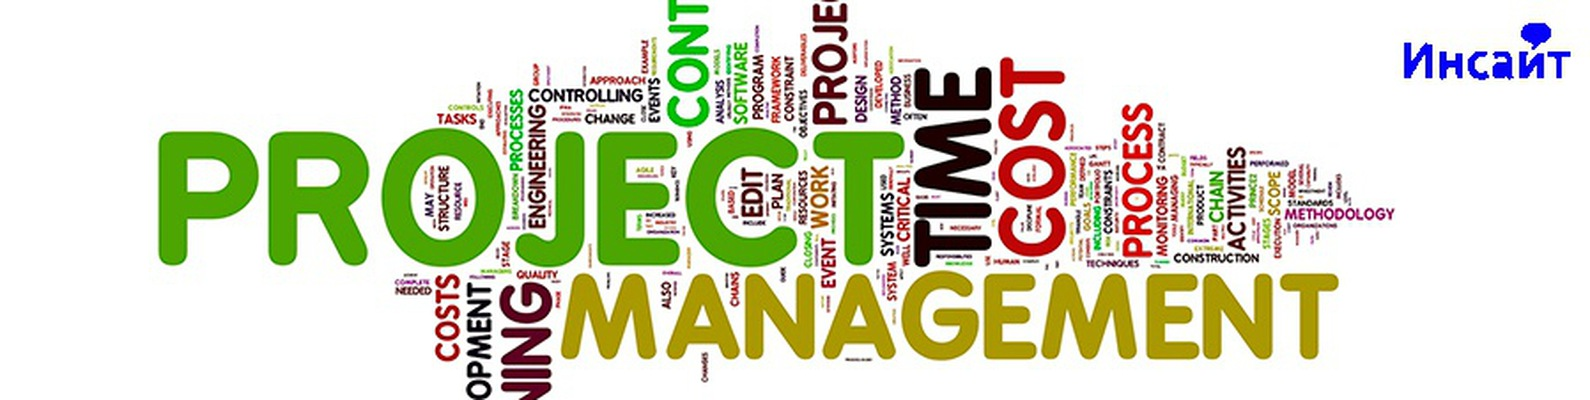 project mananegent The online master of project management degree offered through penn state world campus is an interdisciplinary graduate program that uses problem-based learning to provide a thorough understanding of all aspects of project-management theory and practice.